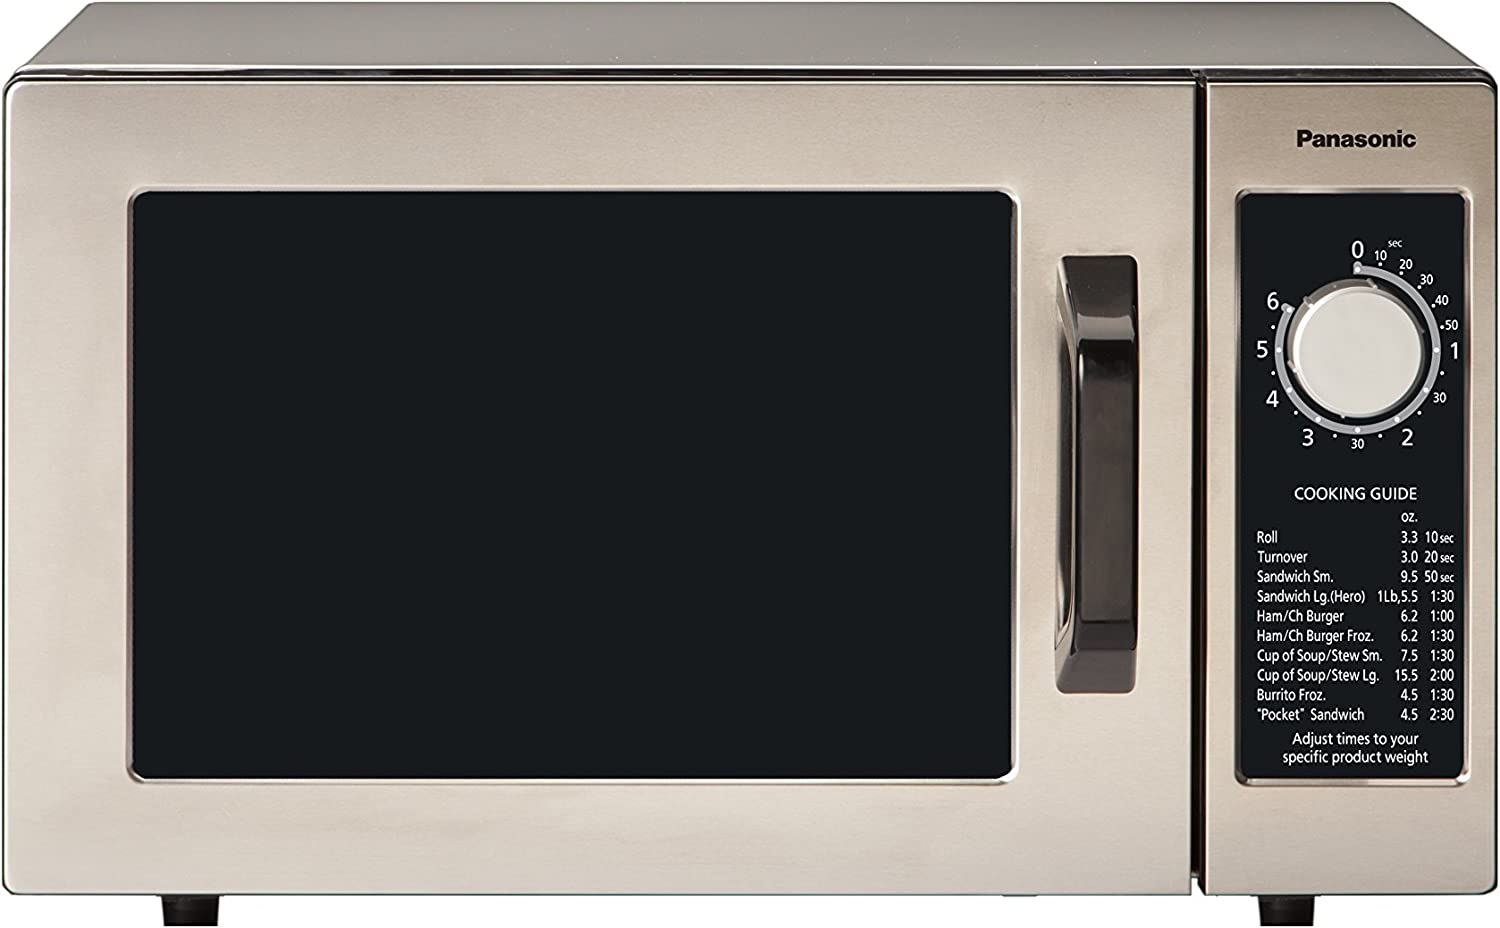 Panasonic NE-1054F Countertop Commercial Microwave Oven with 10 Programmable Memory, Touch Screen Control and Bottom Energy Feed, 1000W, 0.8 Cu. Ft. ...